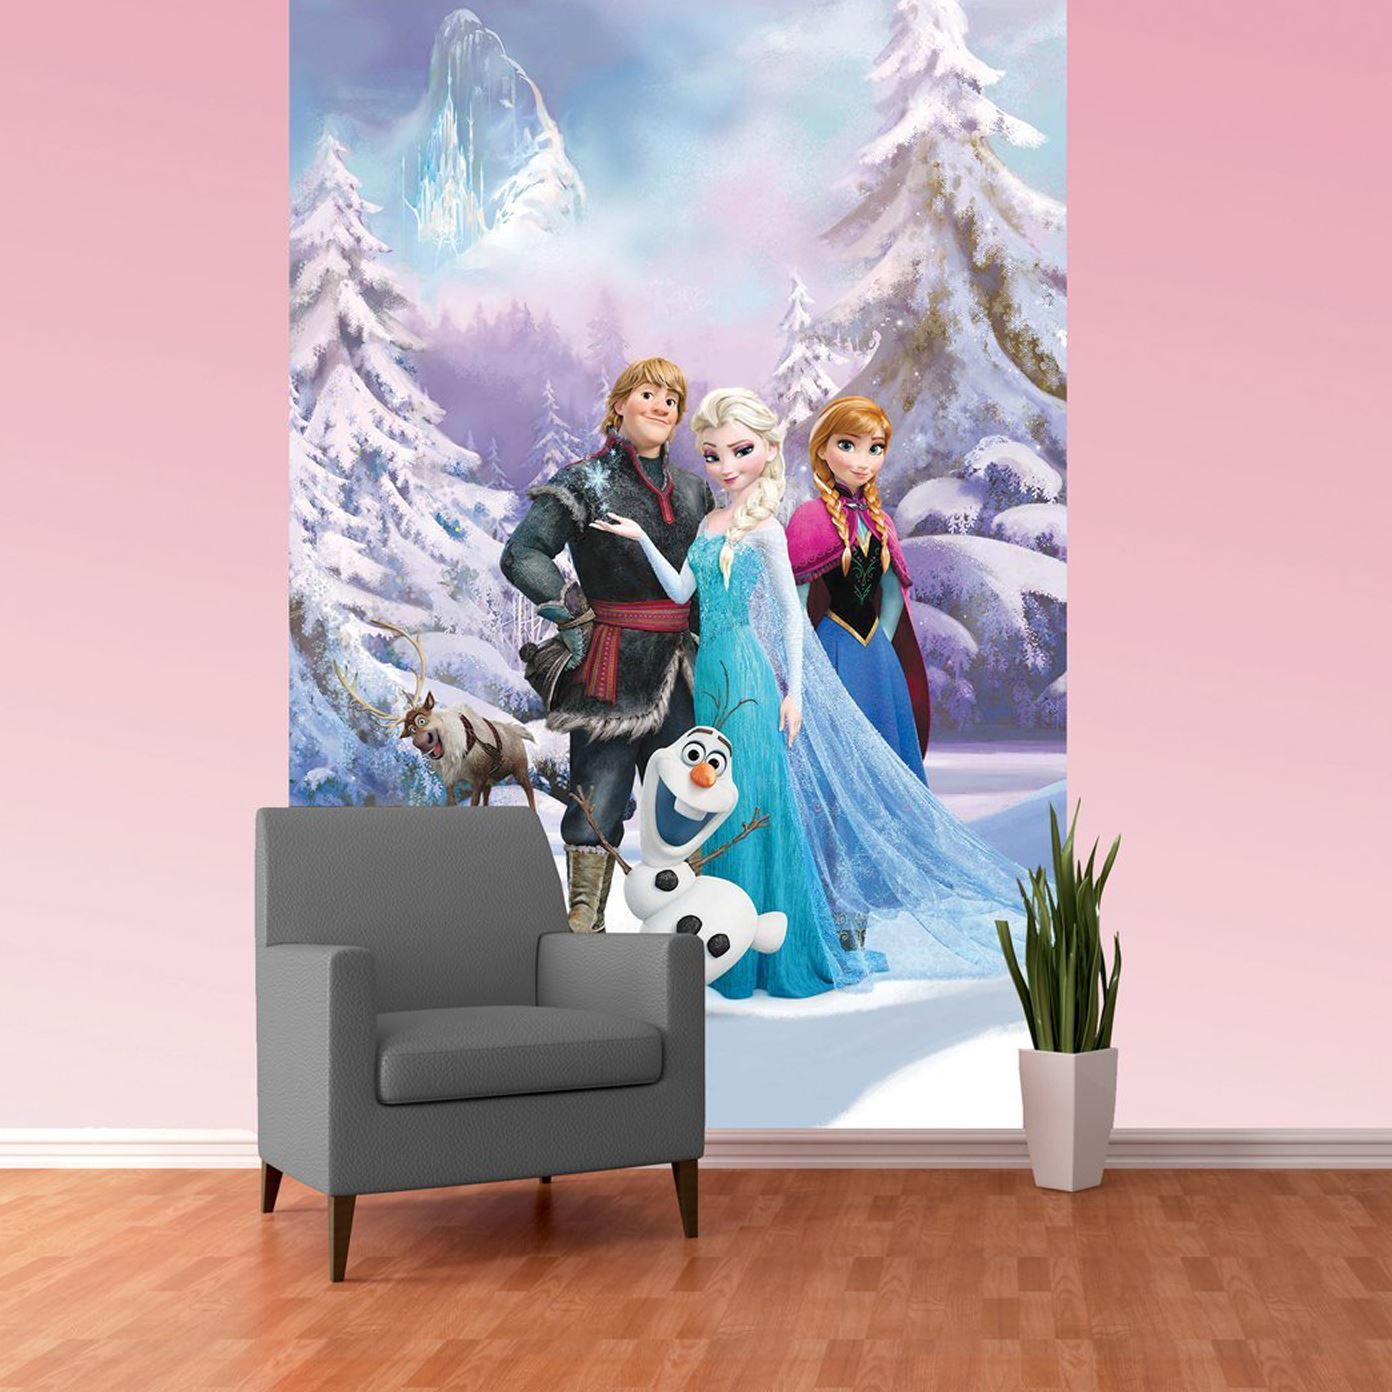 DISNEY PRINCESS Amp FROZEN WALLPAPER MURALS ANNA ELSA  Part 56